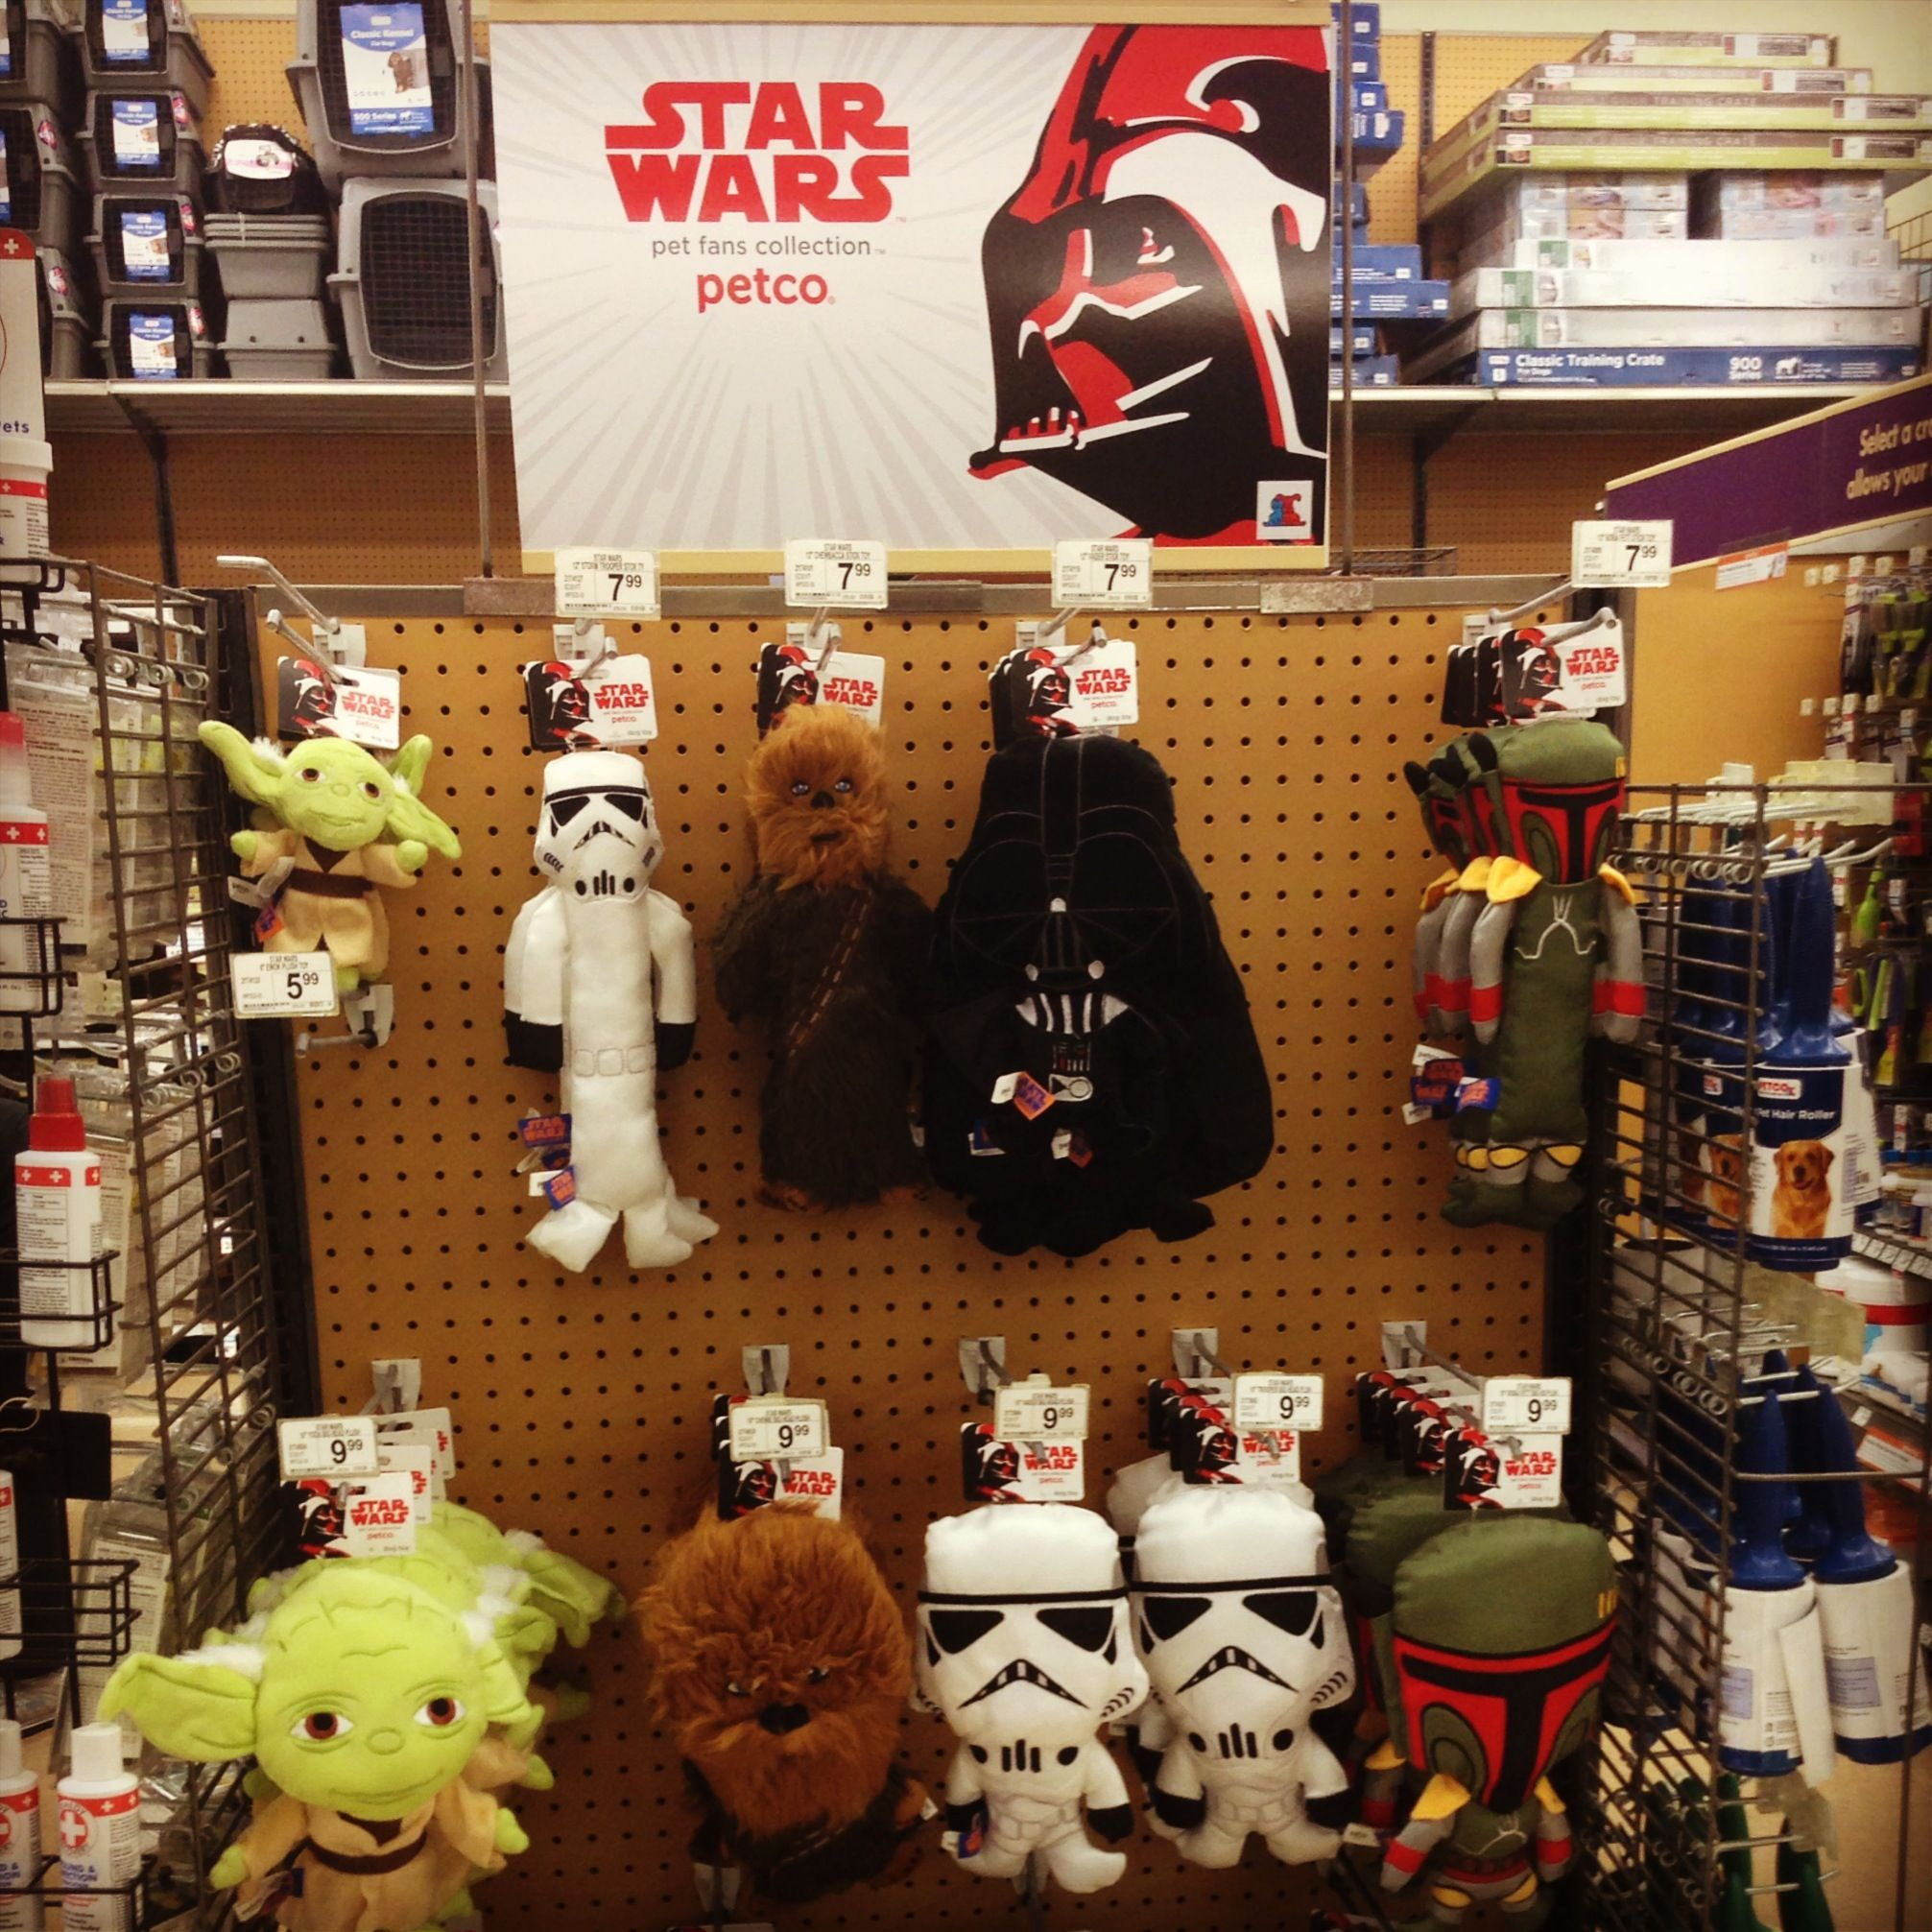 Star Wars Dog Toys At Petco And Not Just Chewy Starwars